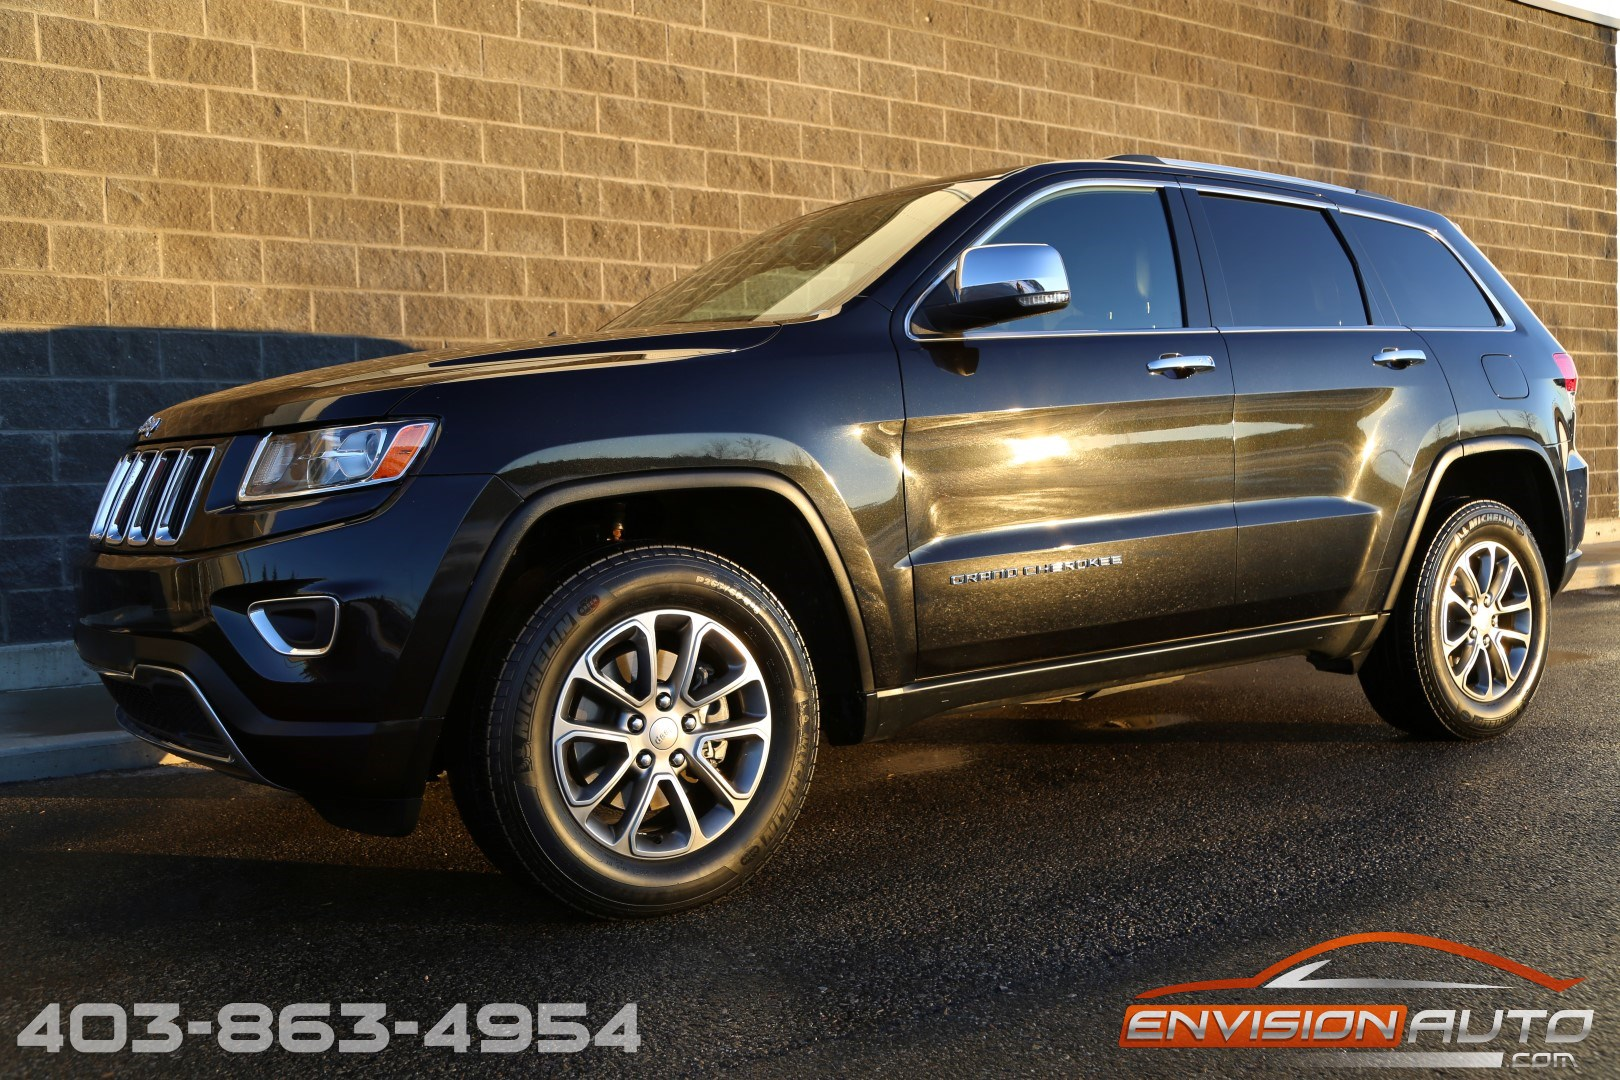 2014 jeep grand cherokee limited 4x4 owners manual